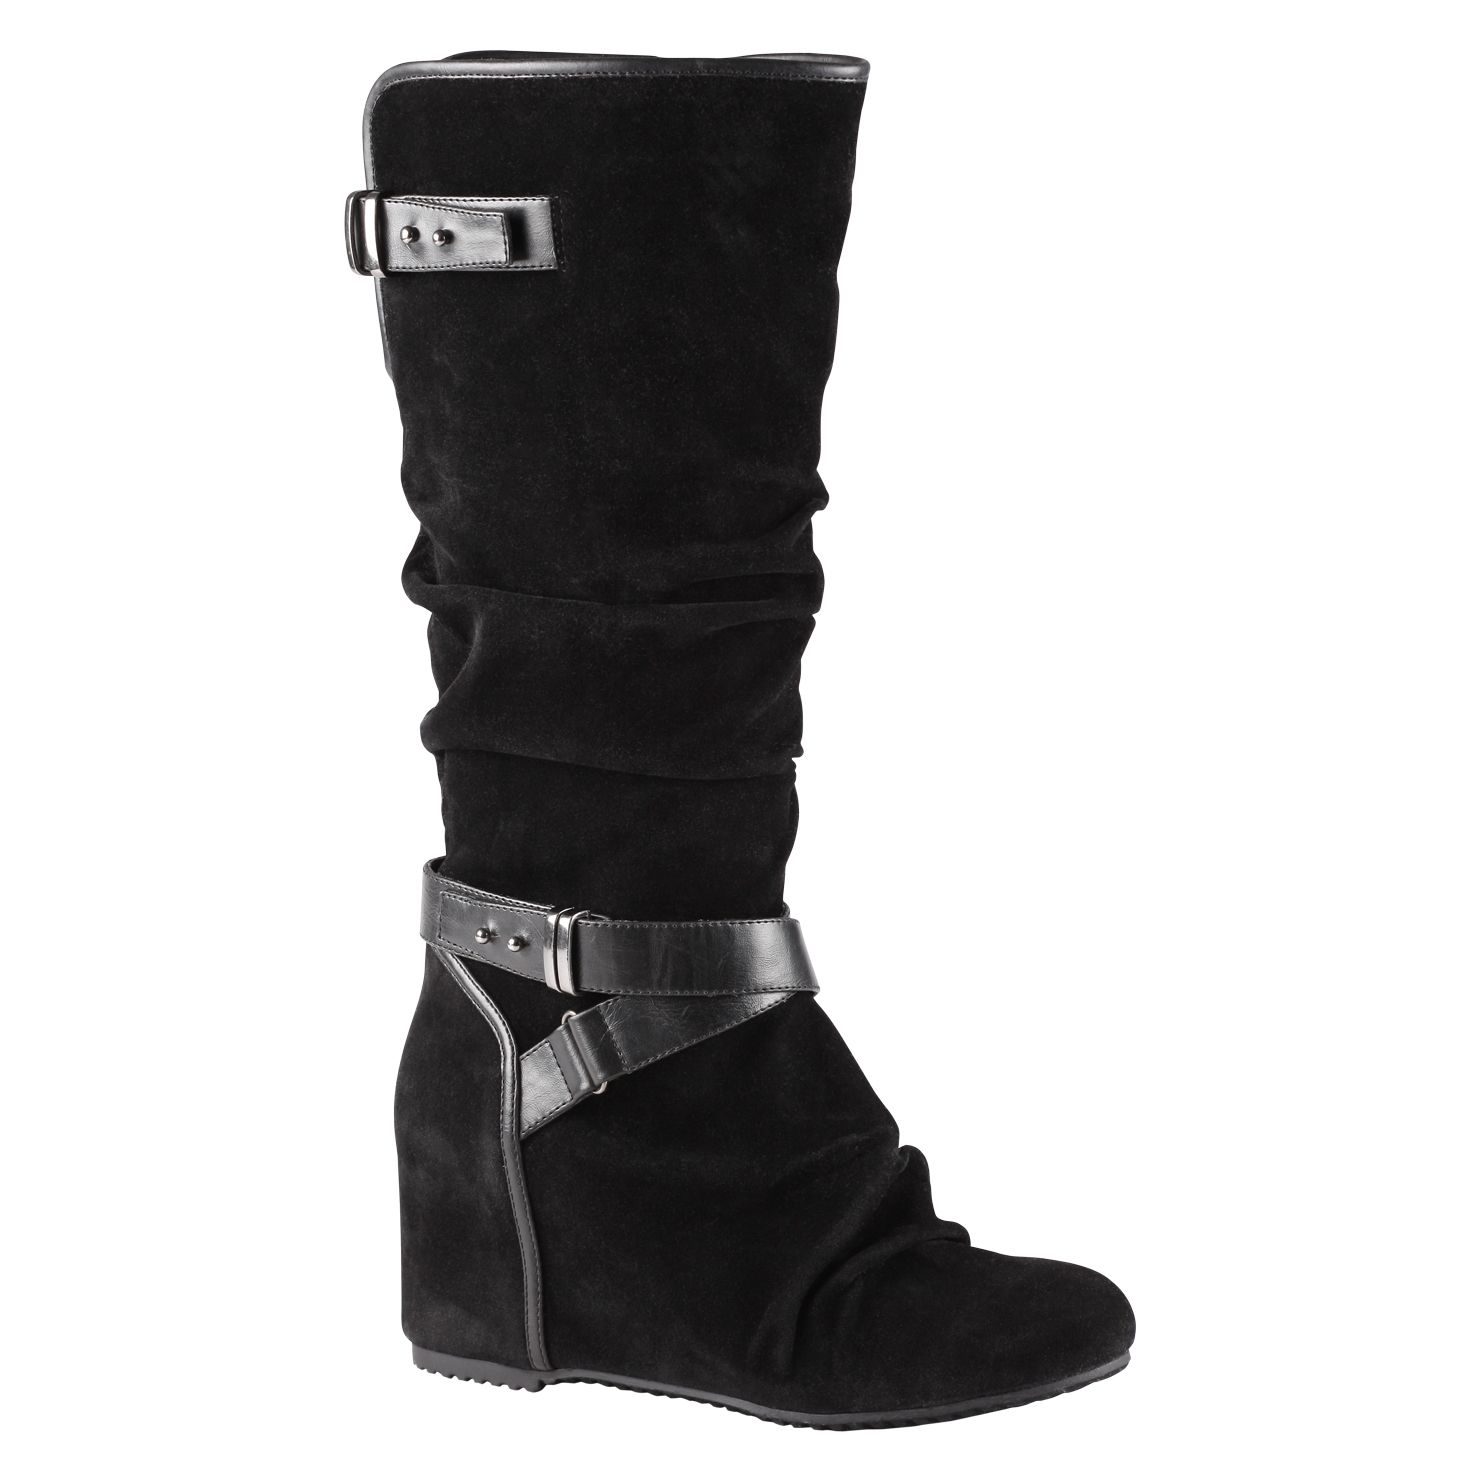 Gottwal Knee High Boots